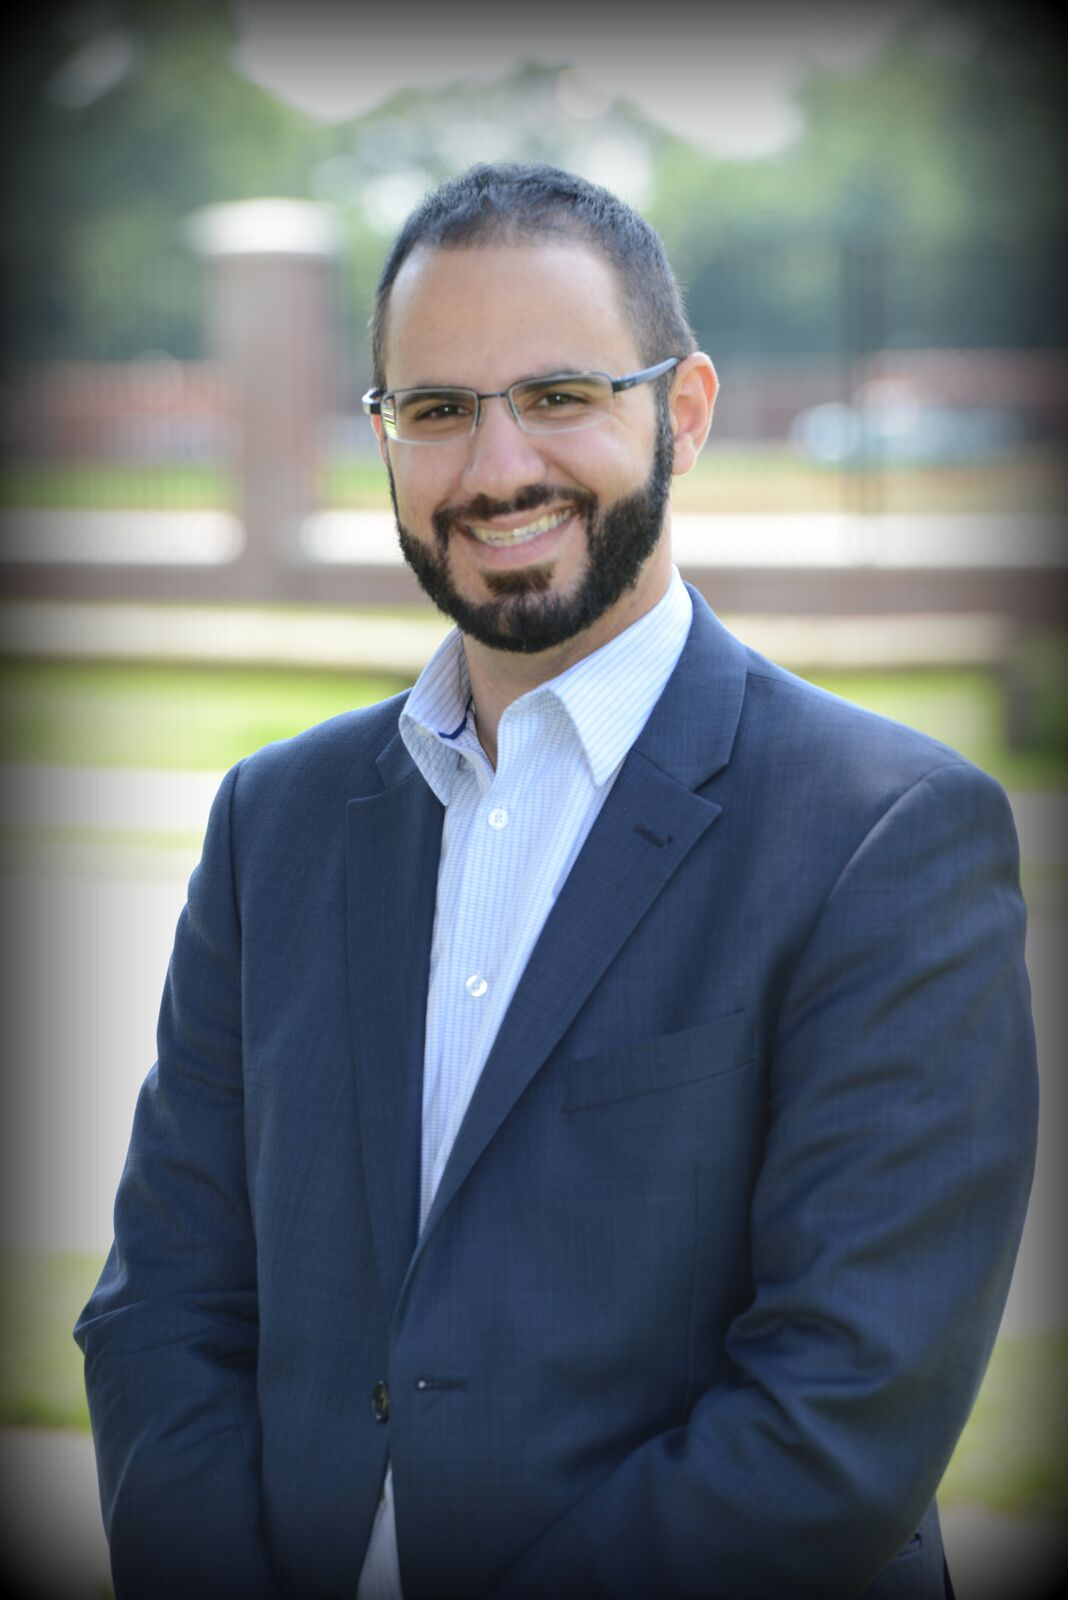 Fahim Abedrabbo was recently elected to the Clifton school board.